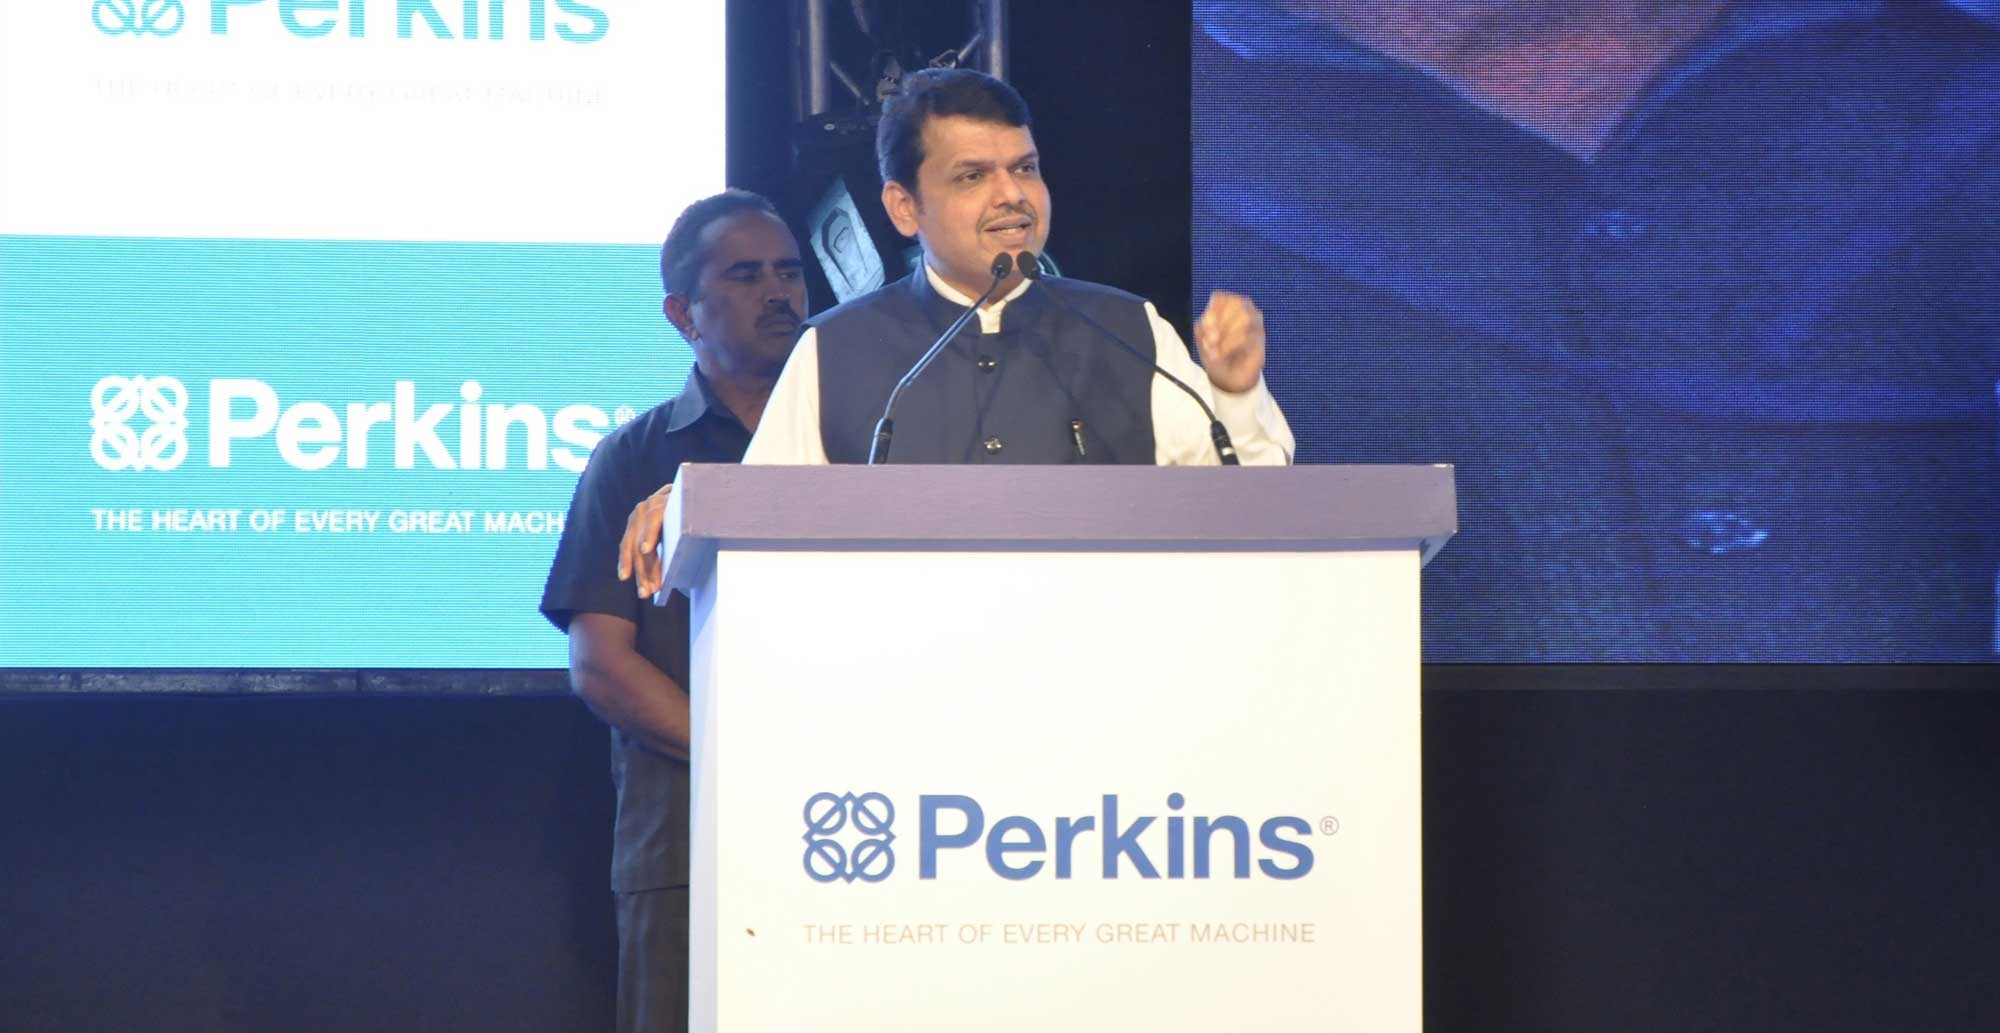 Chief Minister of Maharashtra Devendra Fadnavis